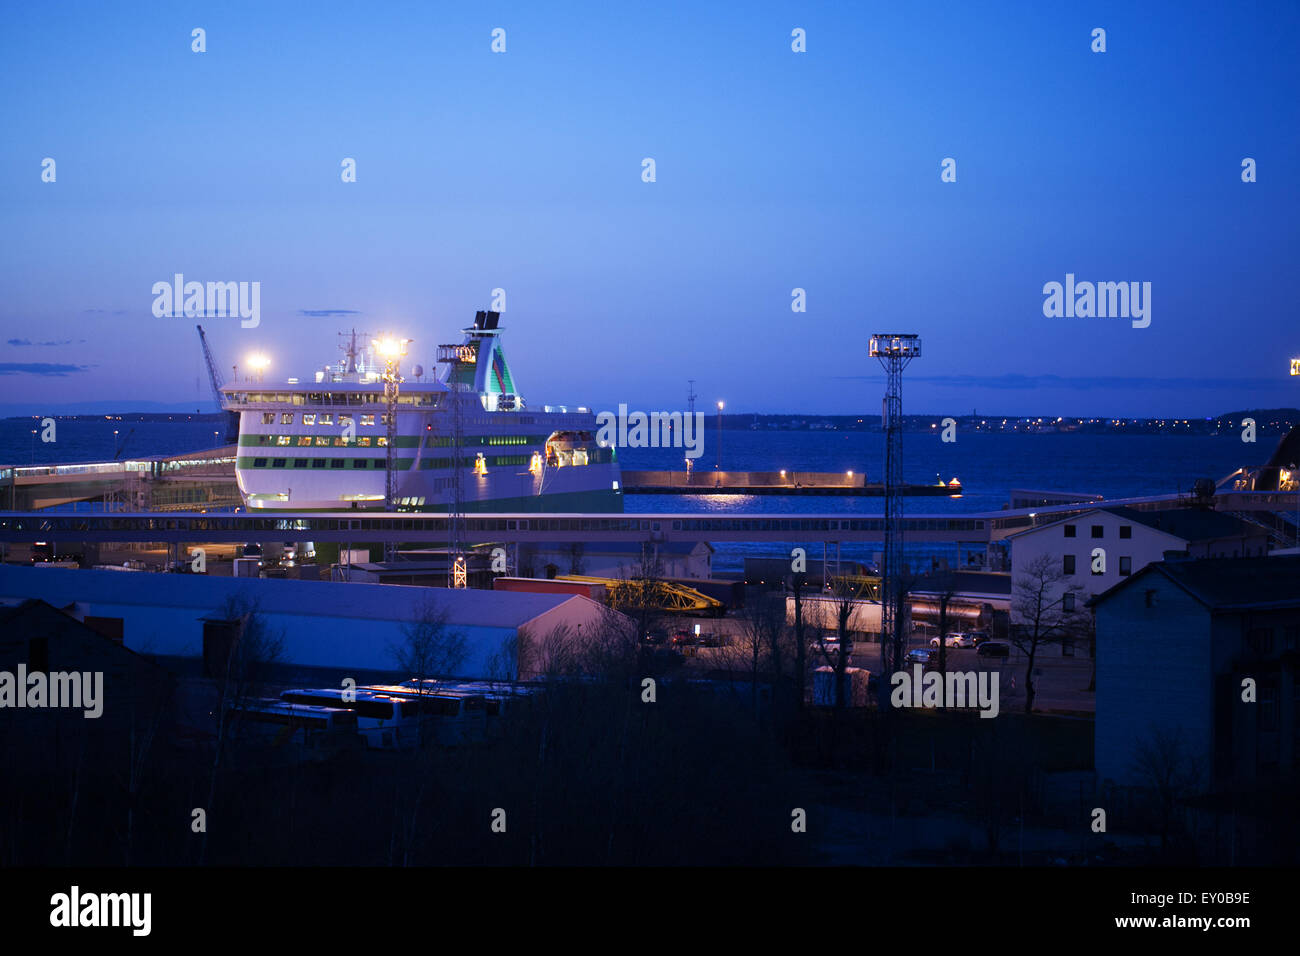 Night view of a docked cruise liner - Stock Image